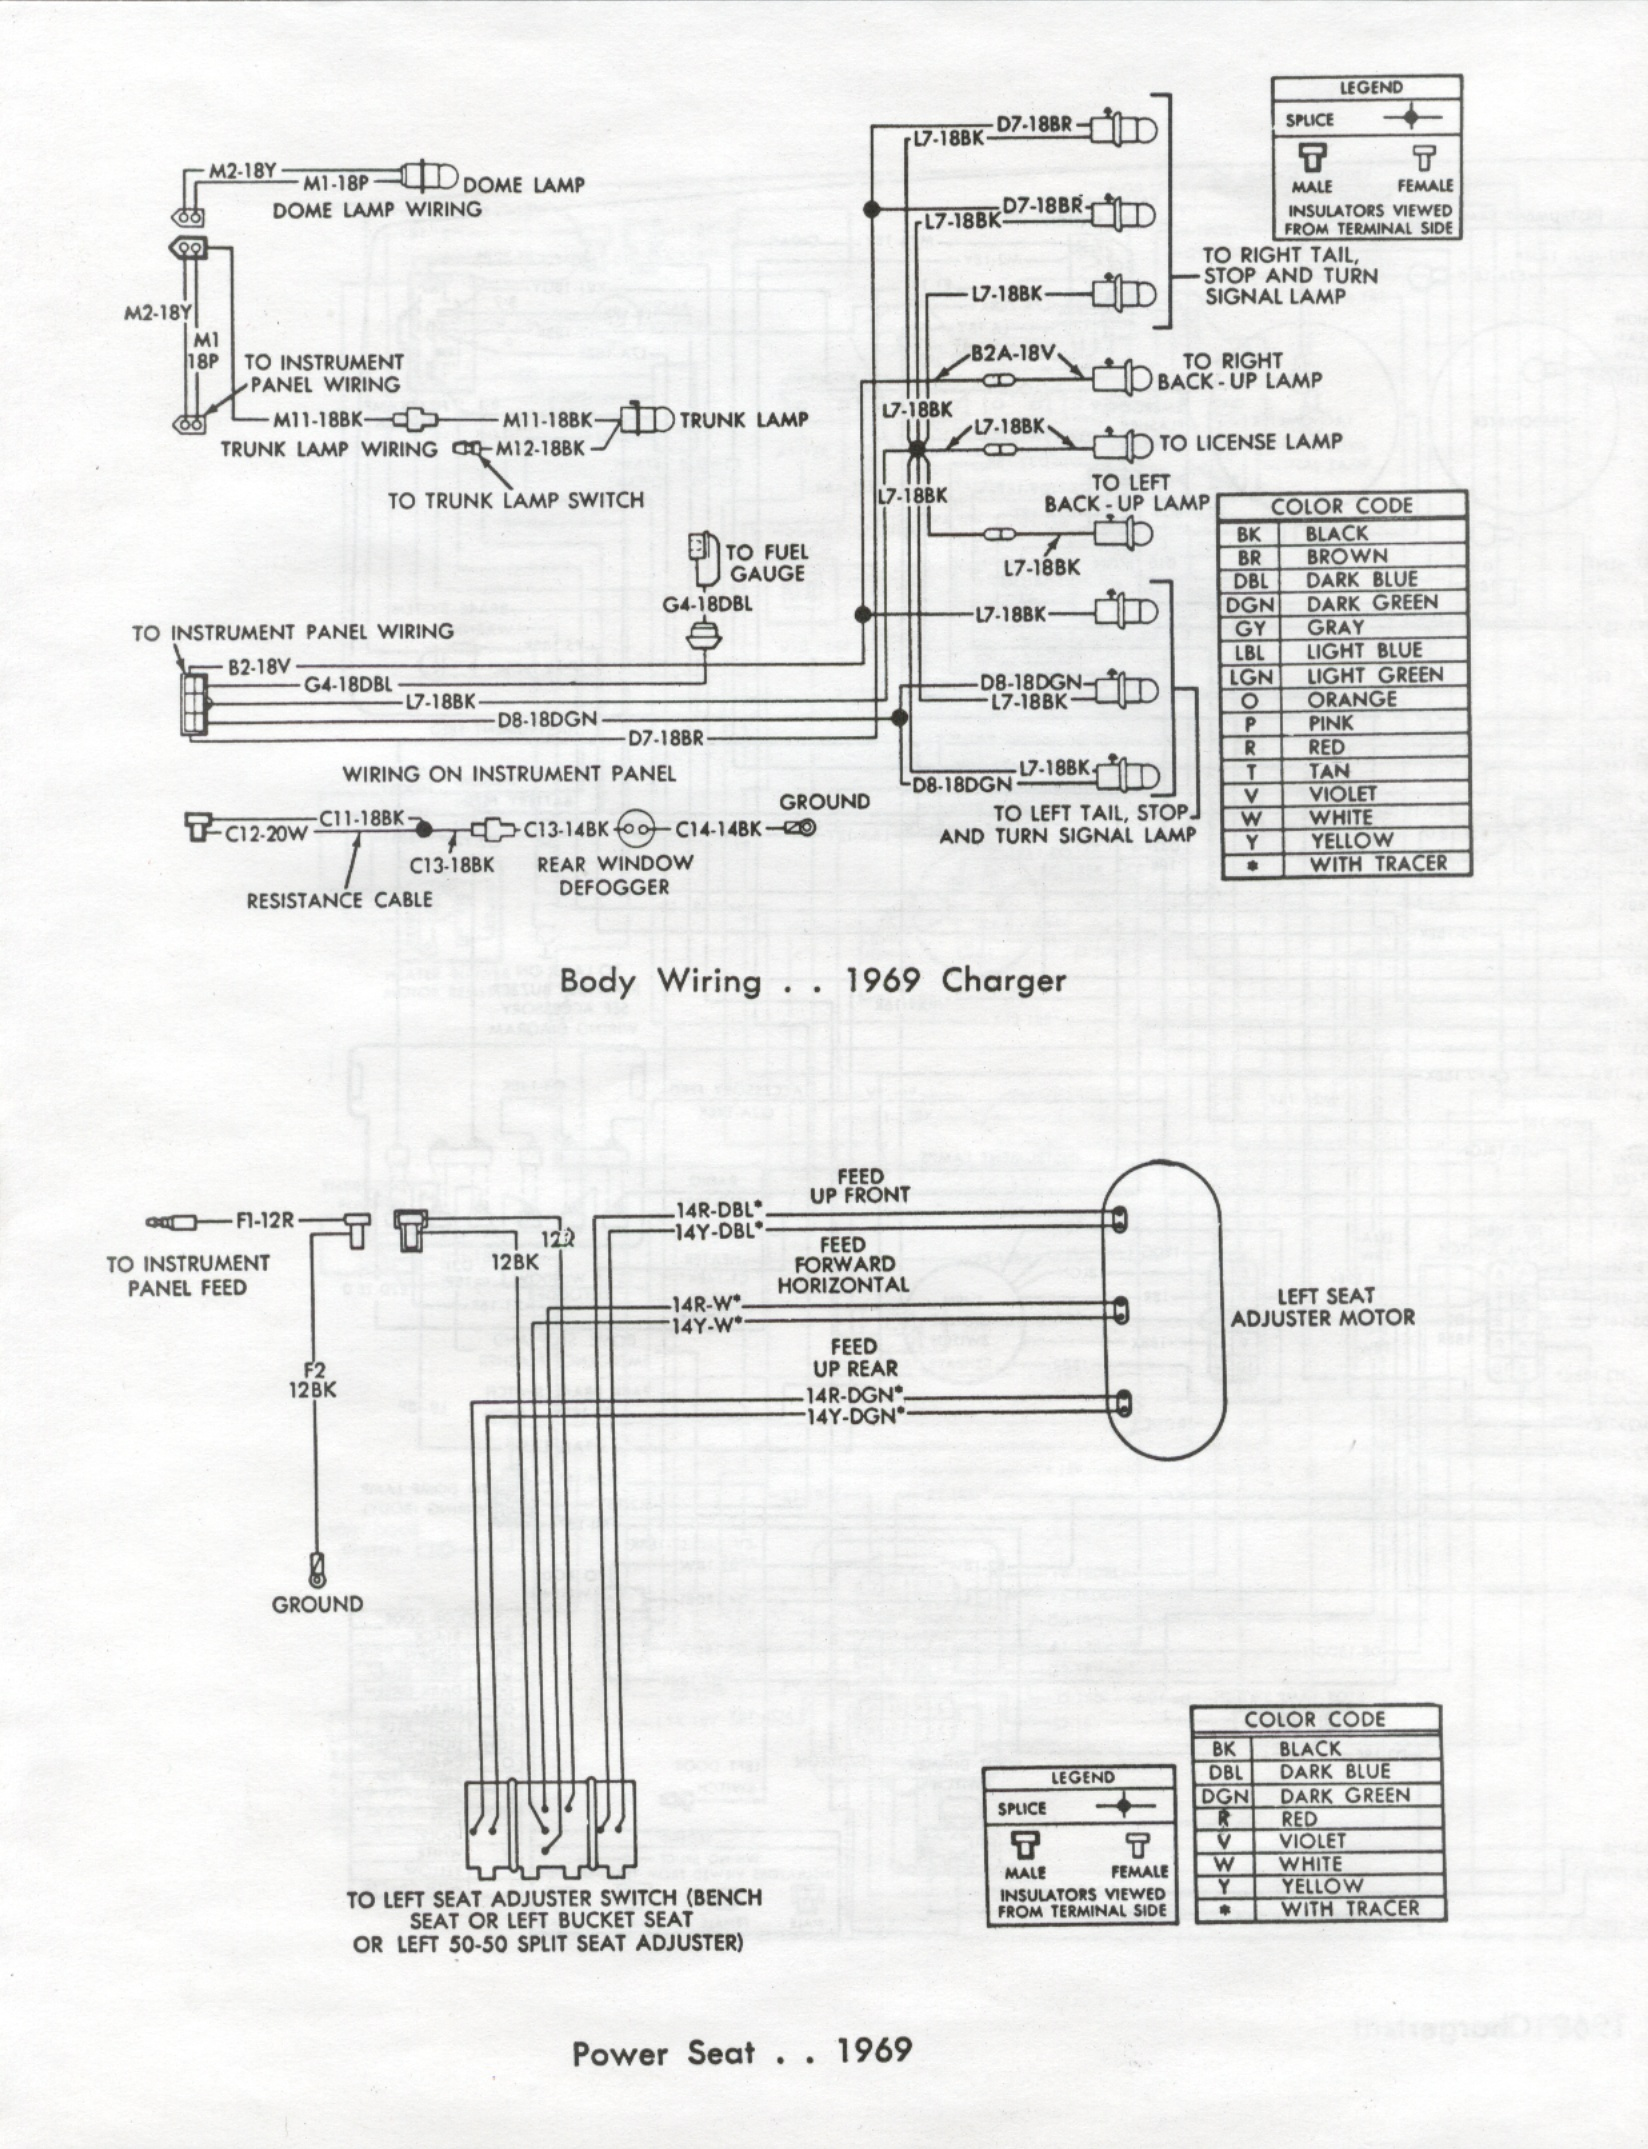 hight resolution of 69 charger headlight wiring diagram data wiring diagram 1969 dodge charger 69 charger headlight wiring diagram